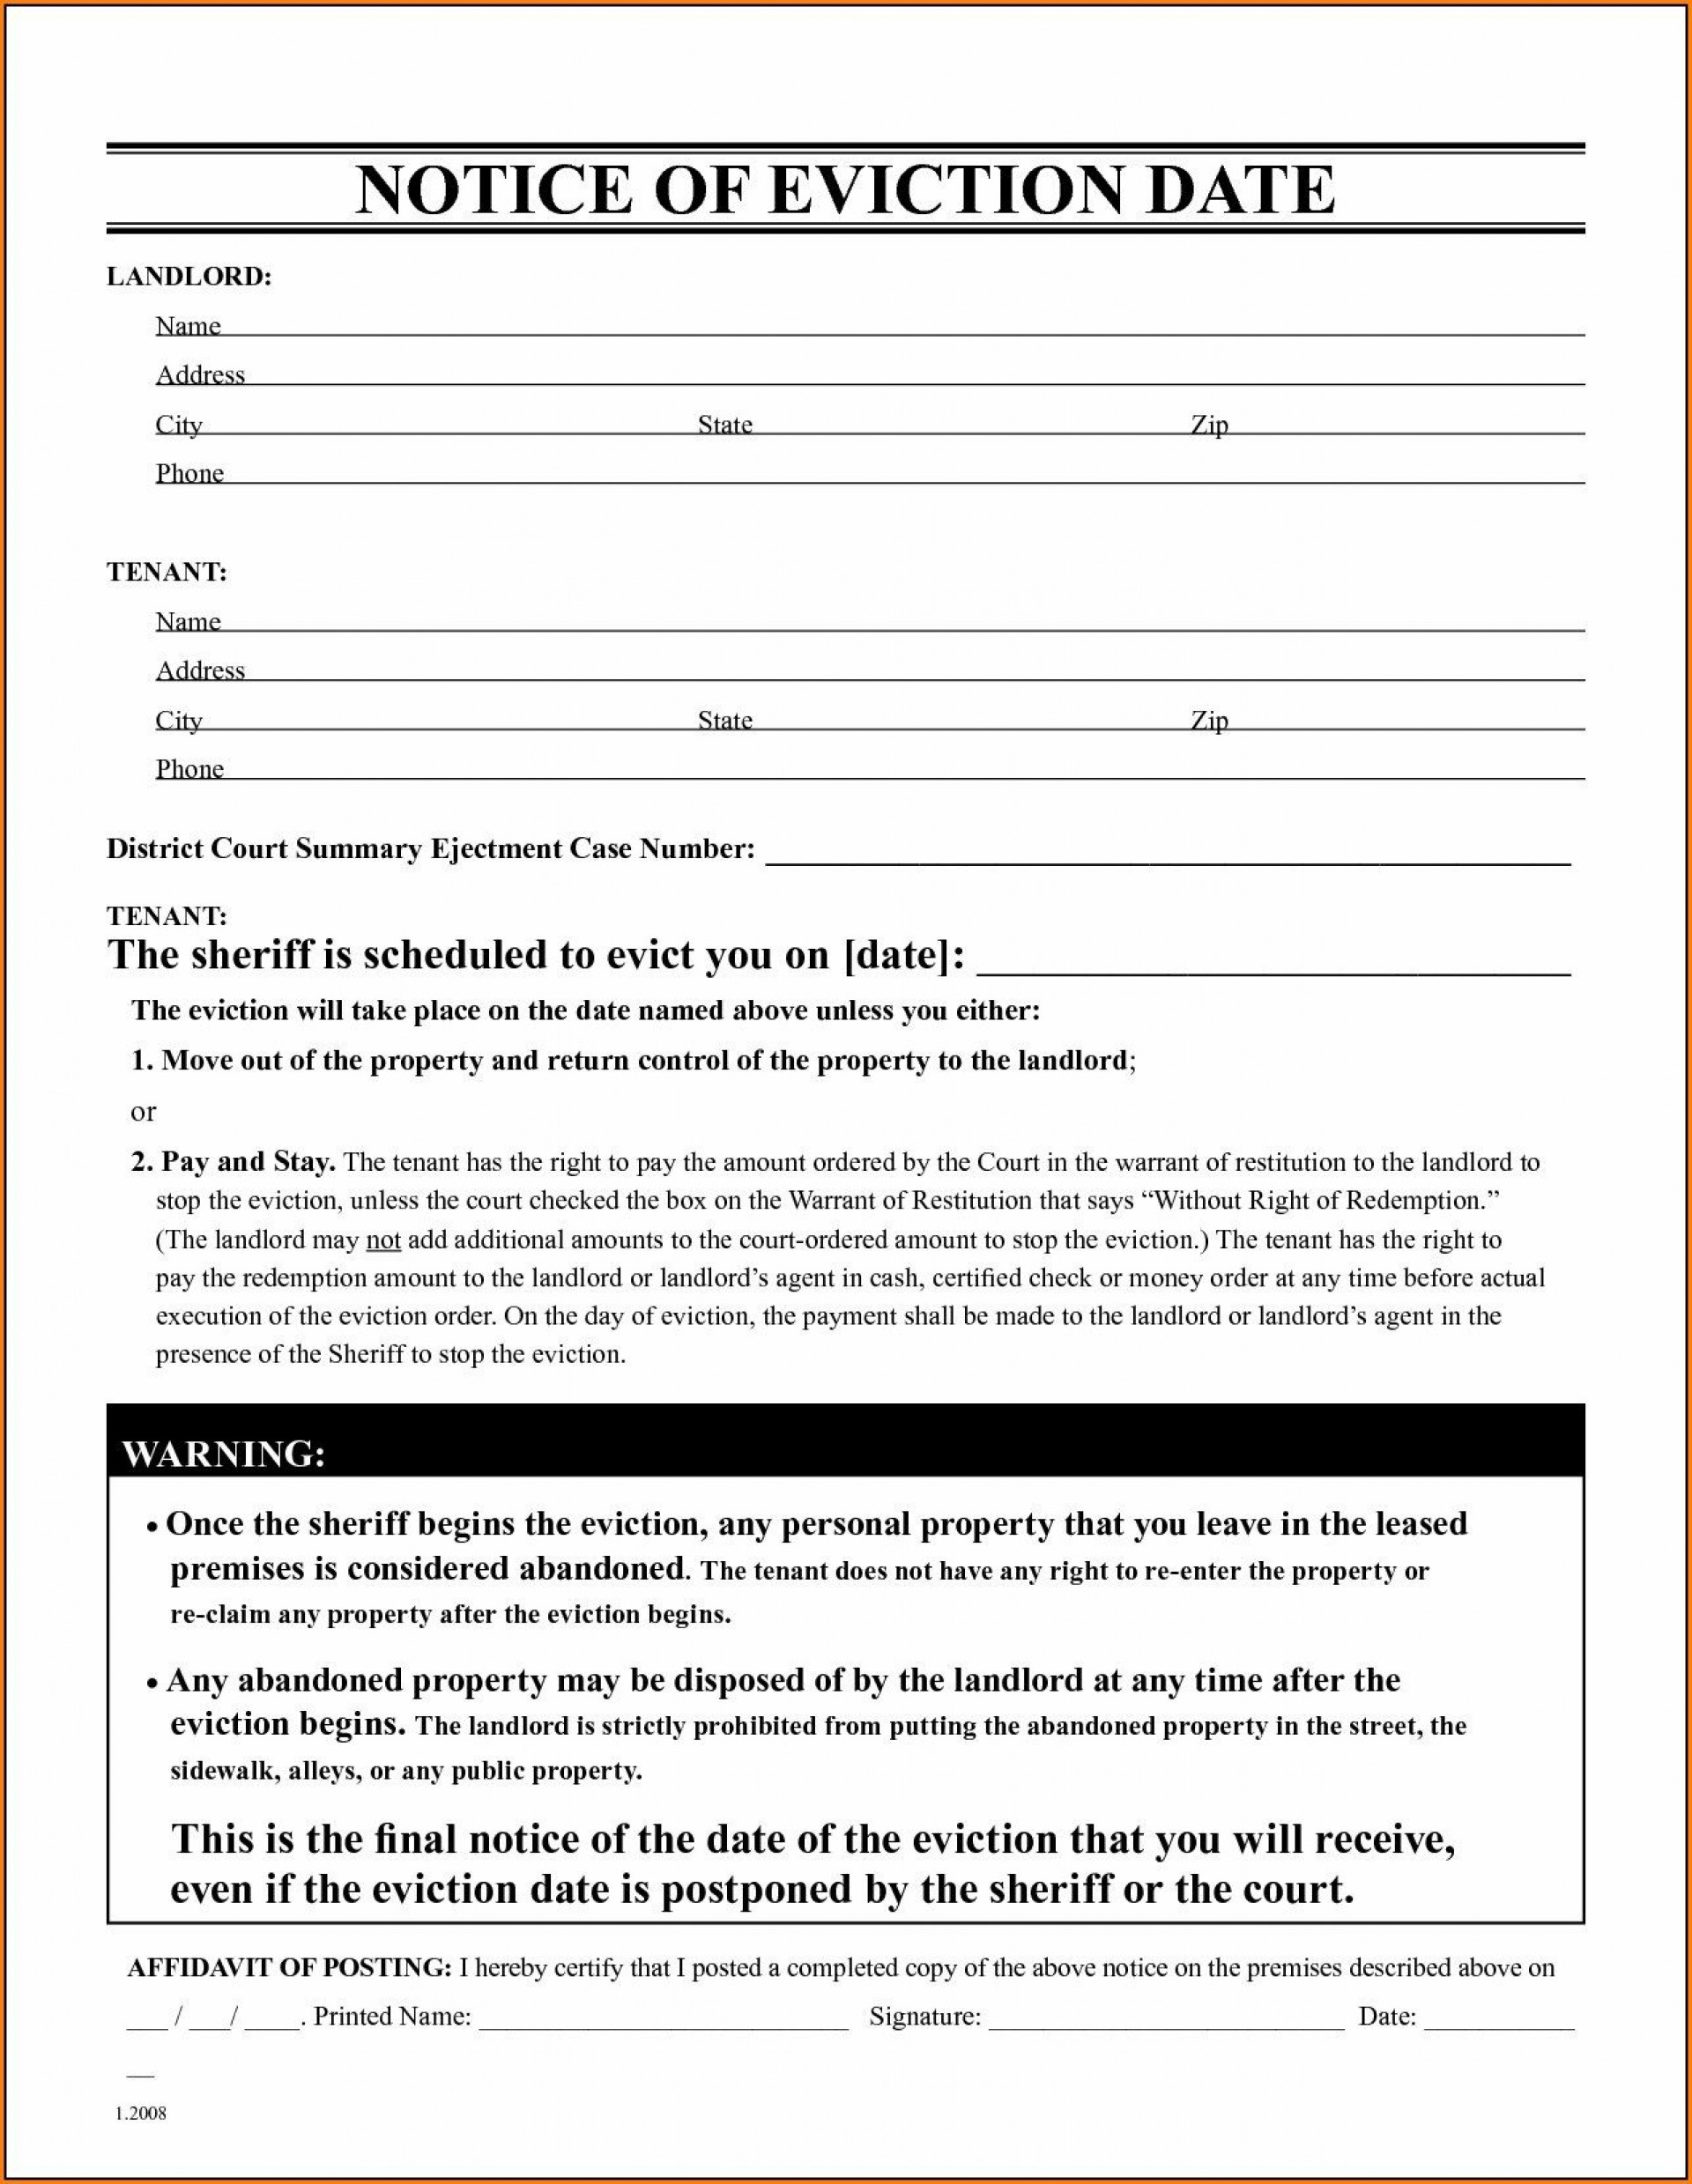 005 Best Eviction Notice Template Free Inspiration  30 Day Uk Word Document1920